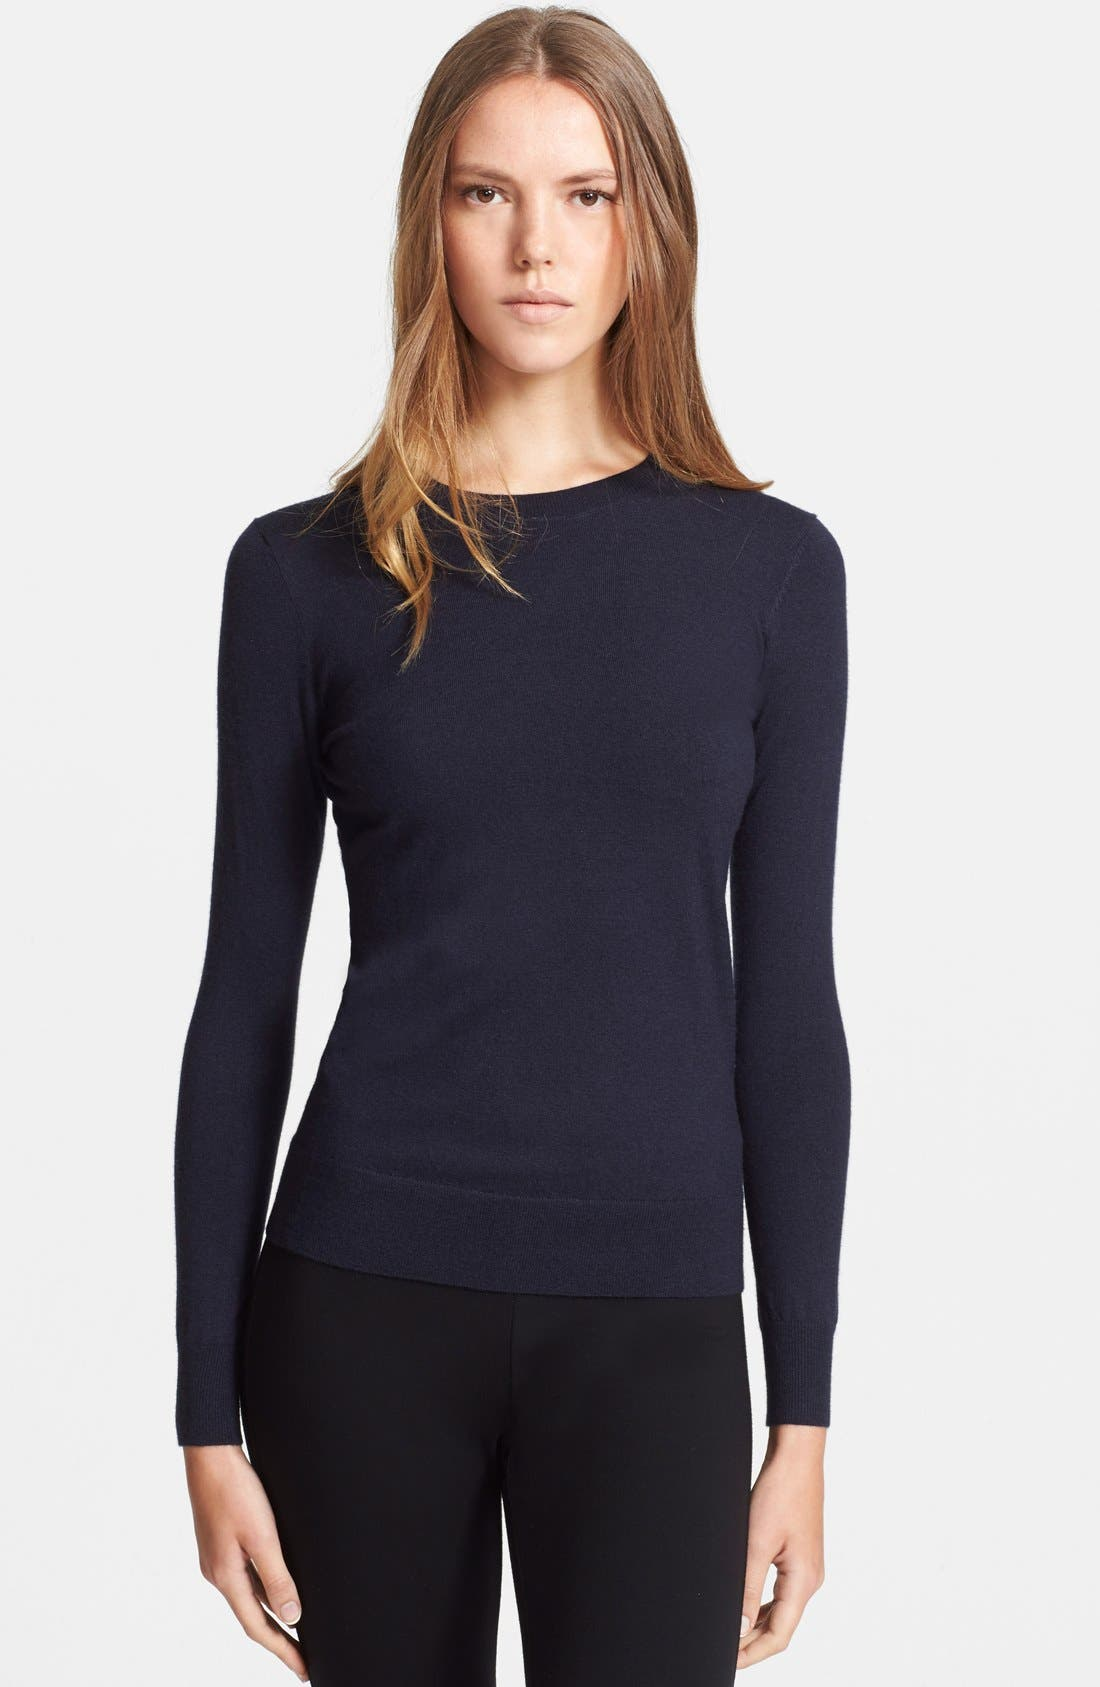 Alternate Image 1 Selected - Theory 'Perfect' Cashmere Blend Crewneck Sweater